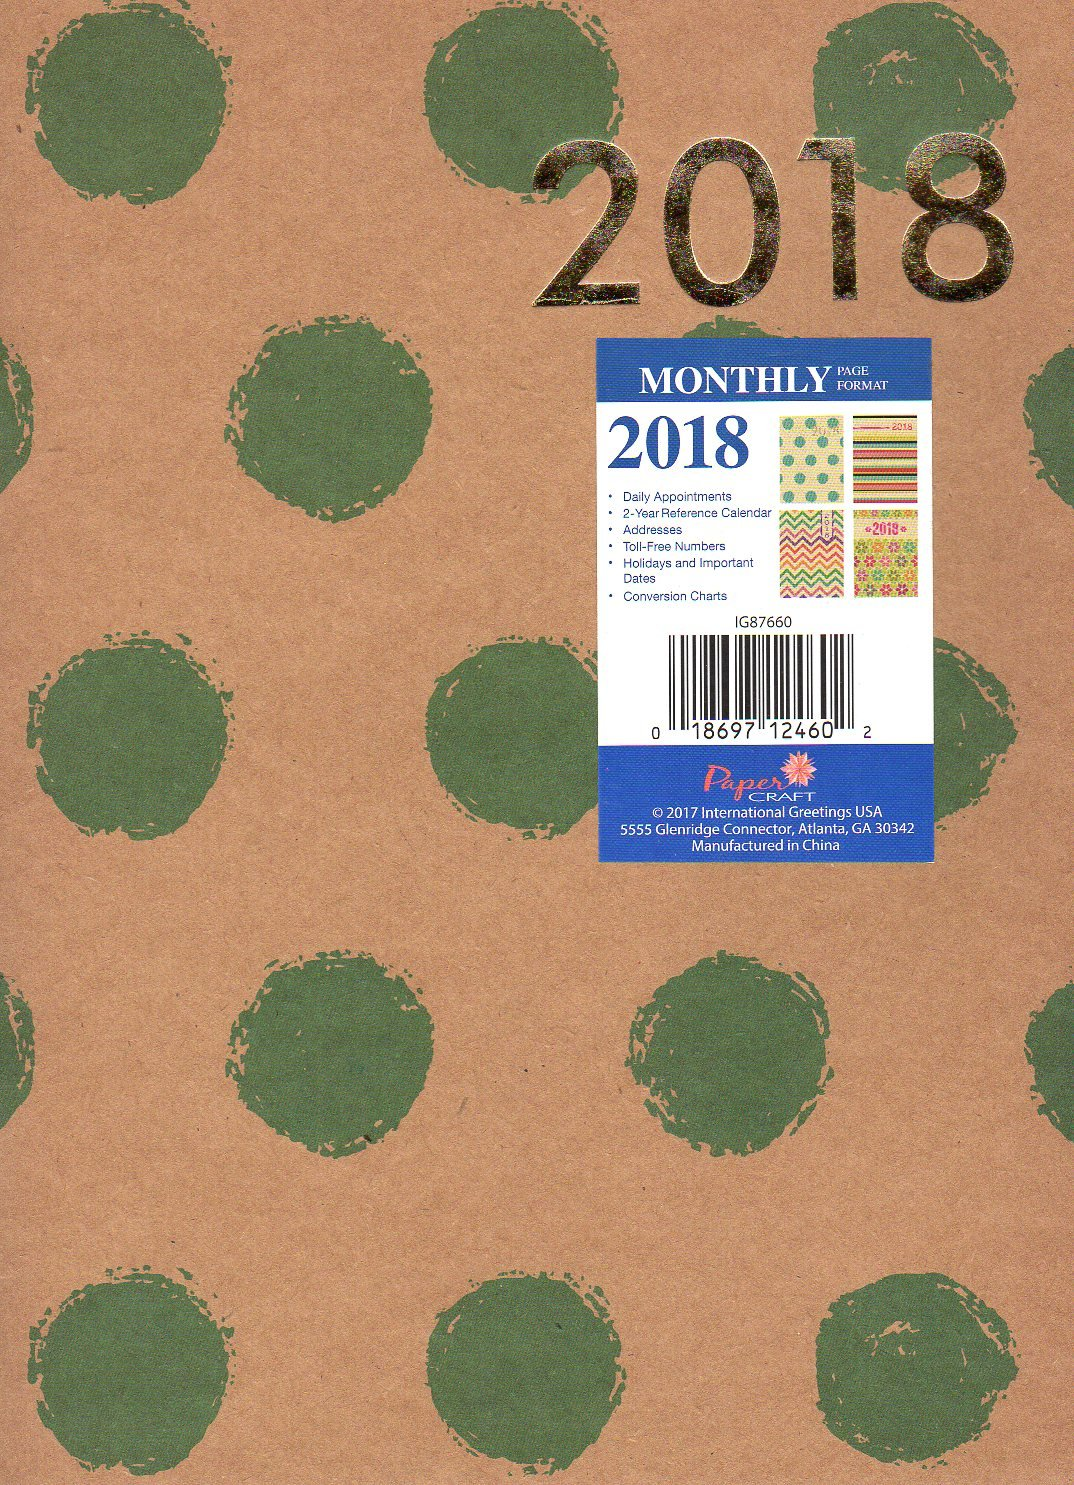 Amazon com : 2018 Natural Brown Green Dot Patterned Monthly Planner